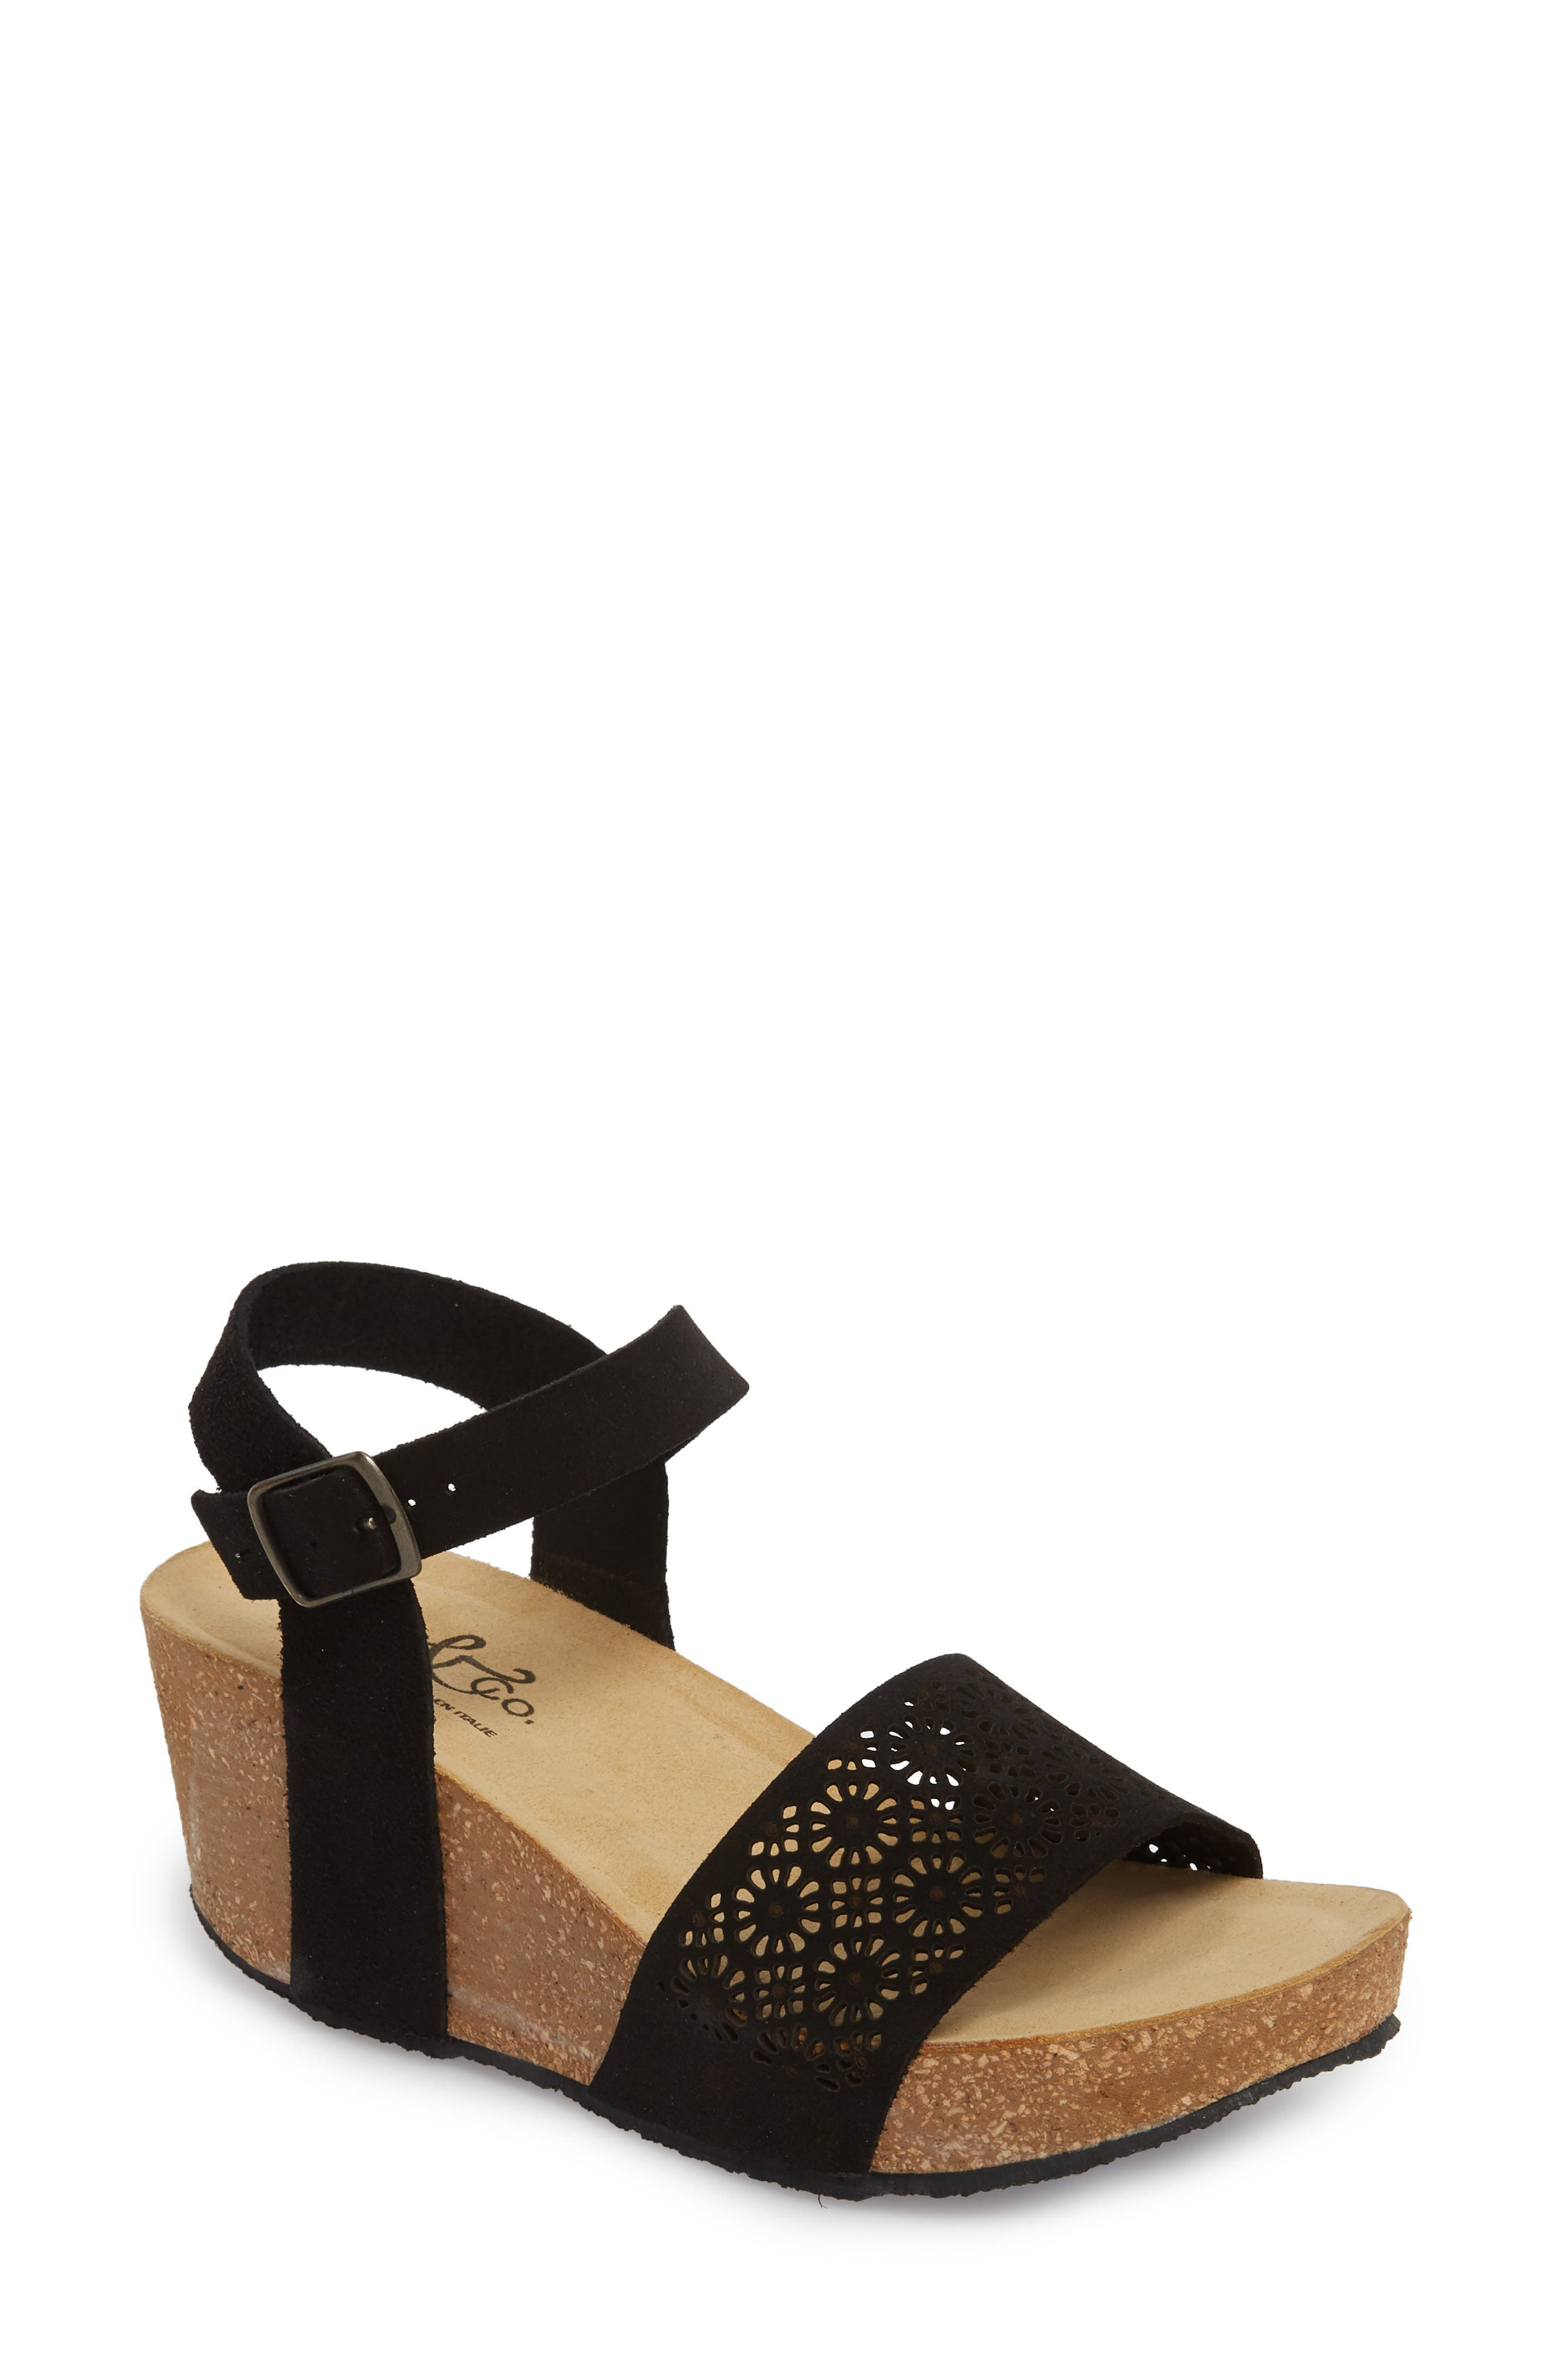 Bos. & Co. Lolo Platform Wedge Sandal (Women)